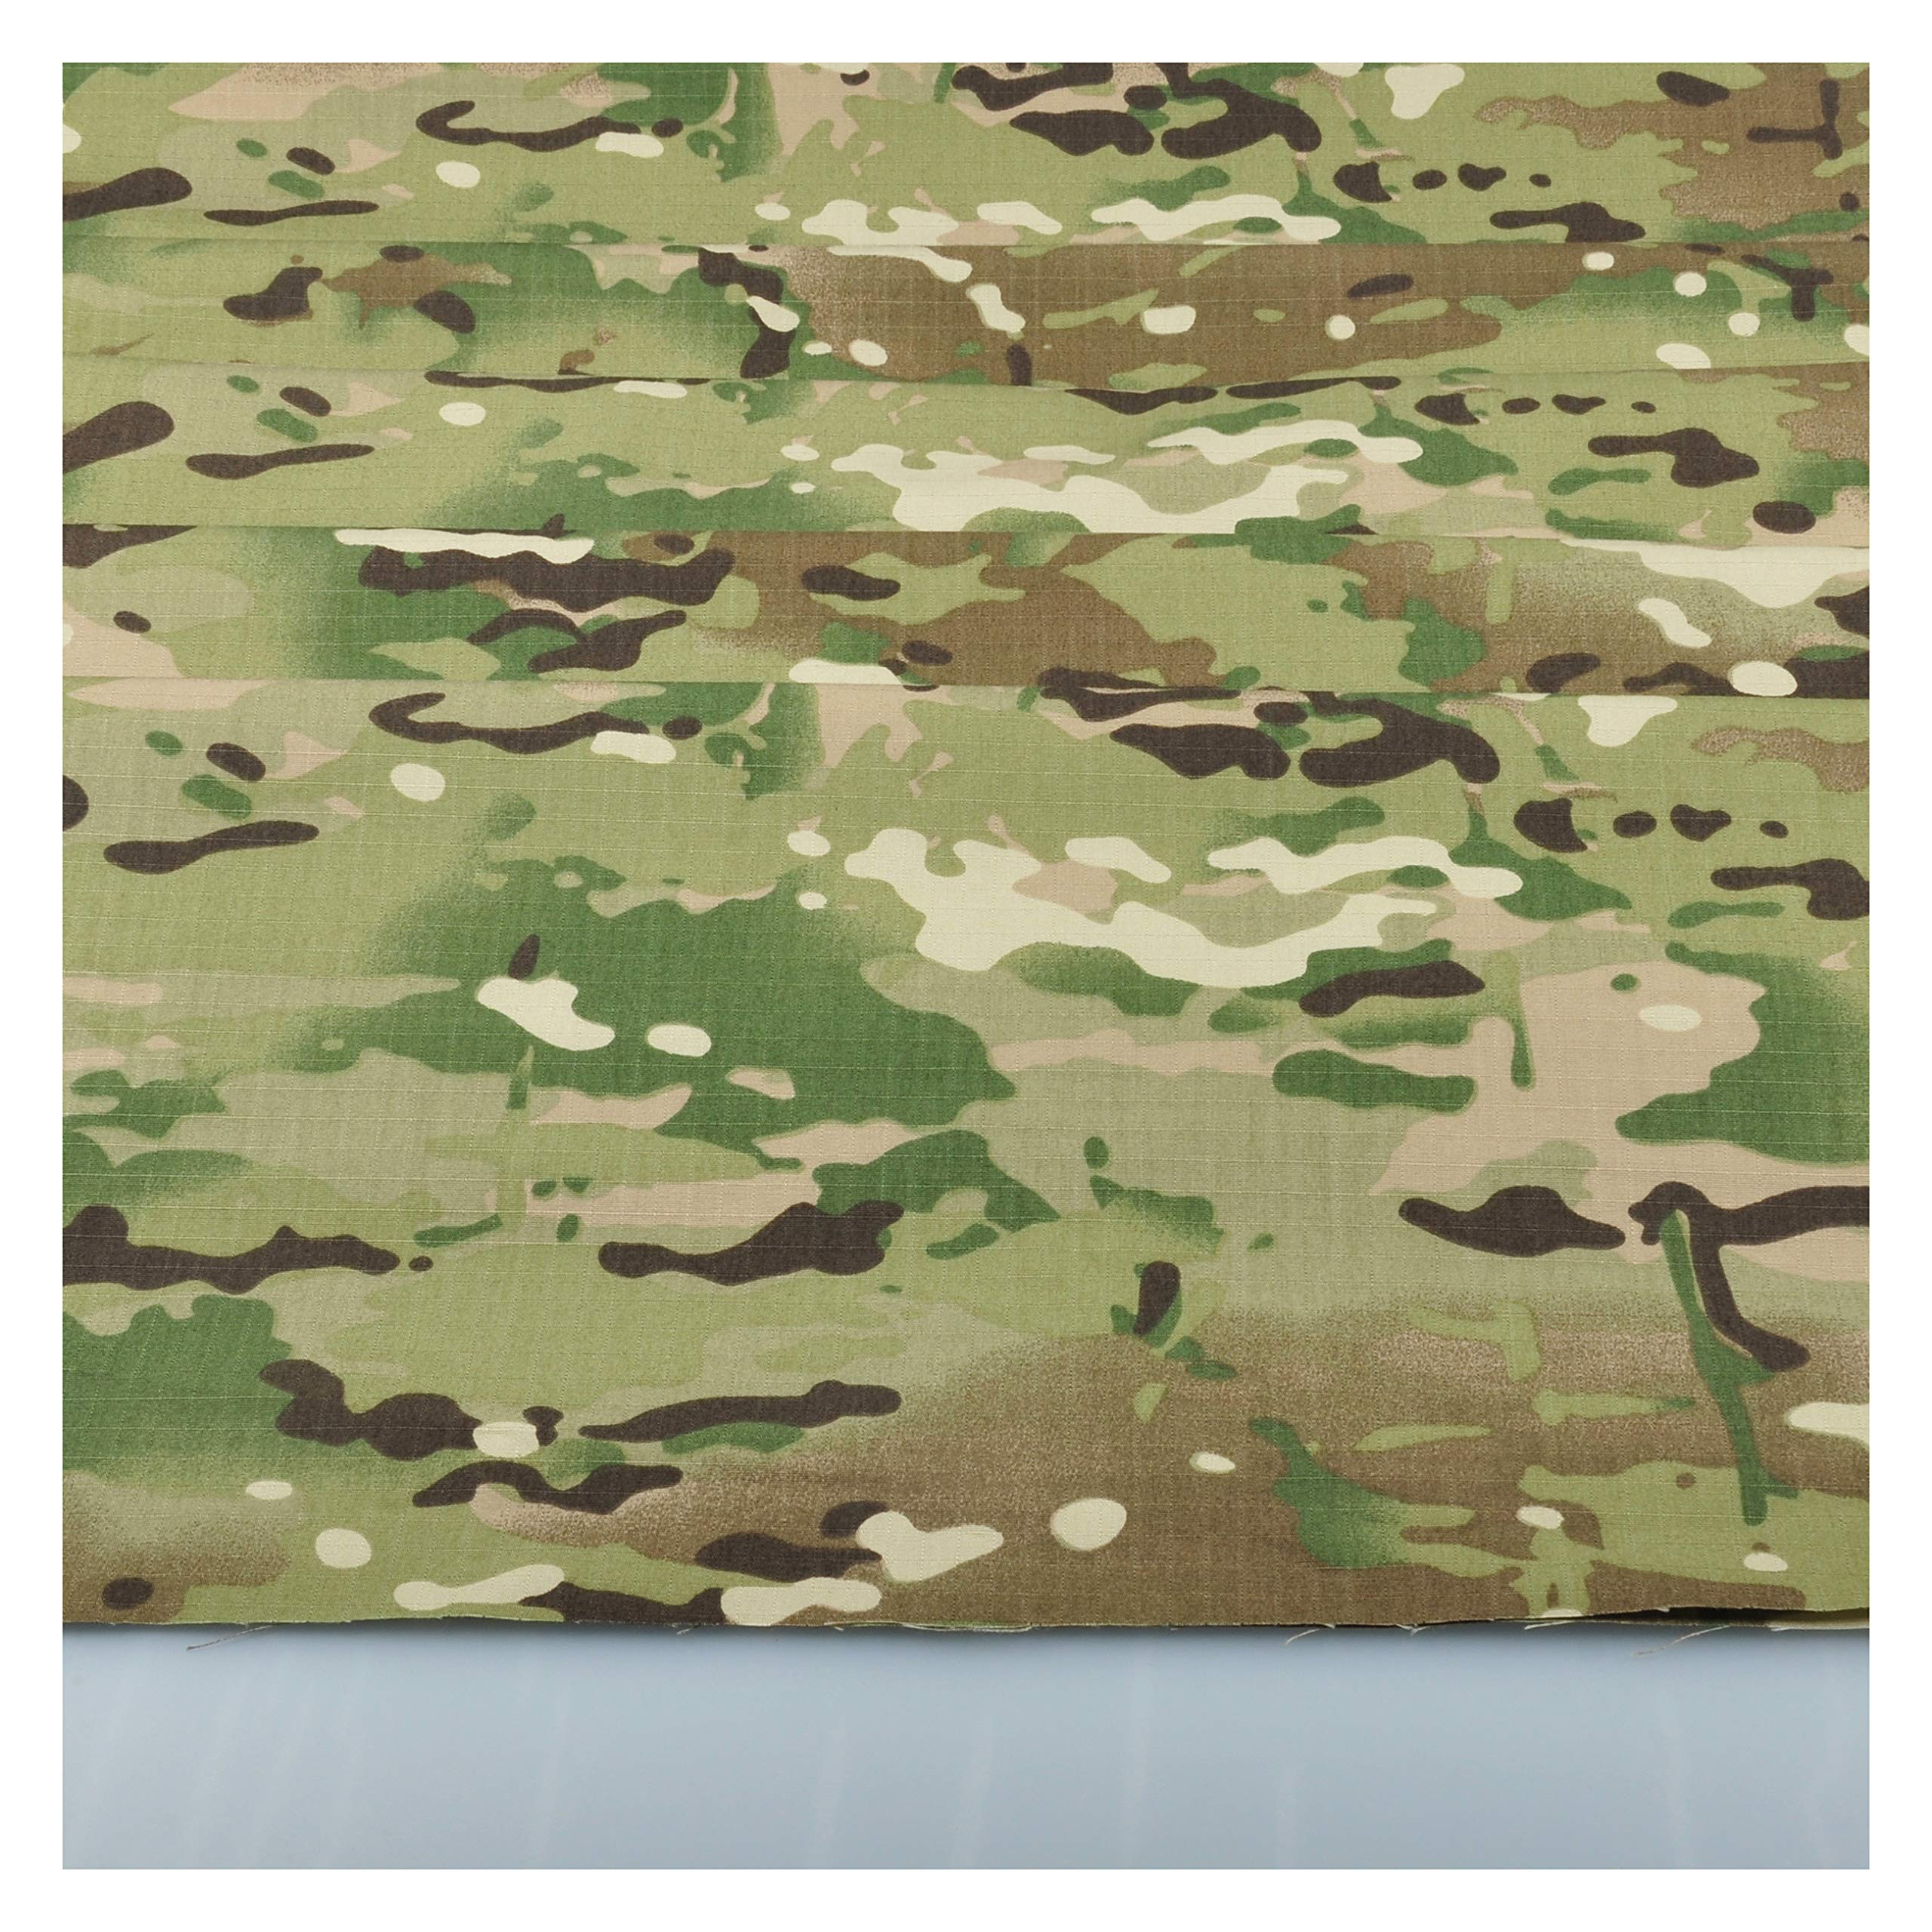 Digital CAMO Pattern in FOREST GREEN /& BLACK Camouflage Heat Transfer or Adhesive Vinyl CHOOSE YOUR SIZE!